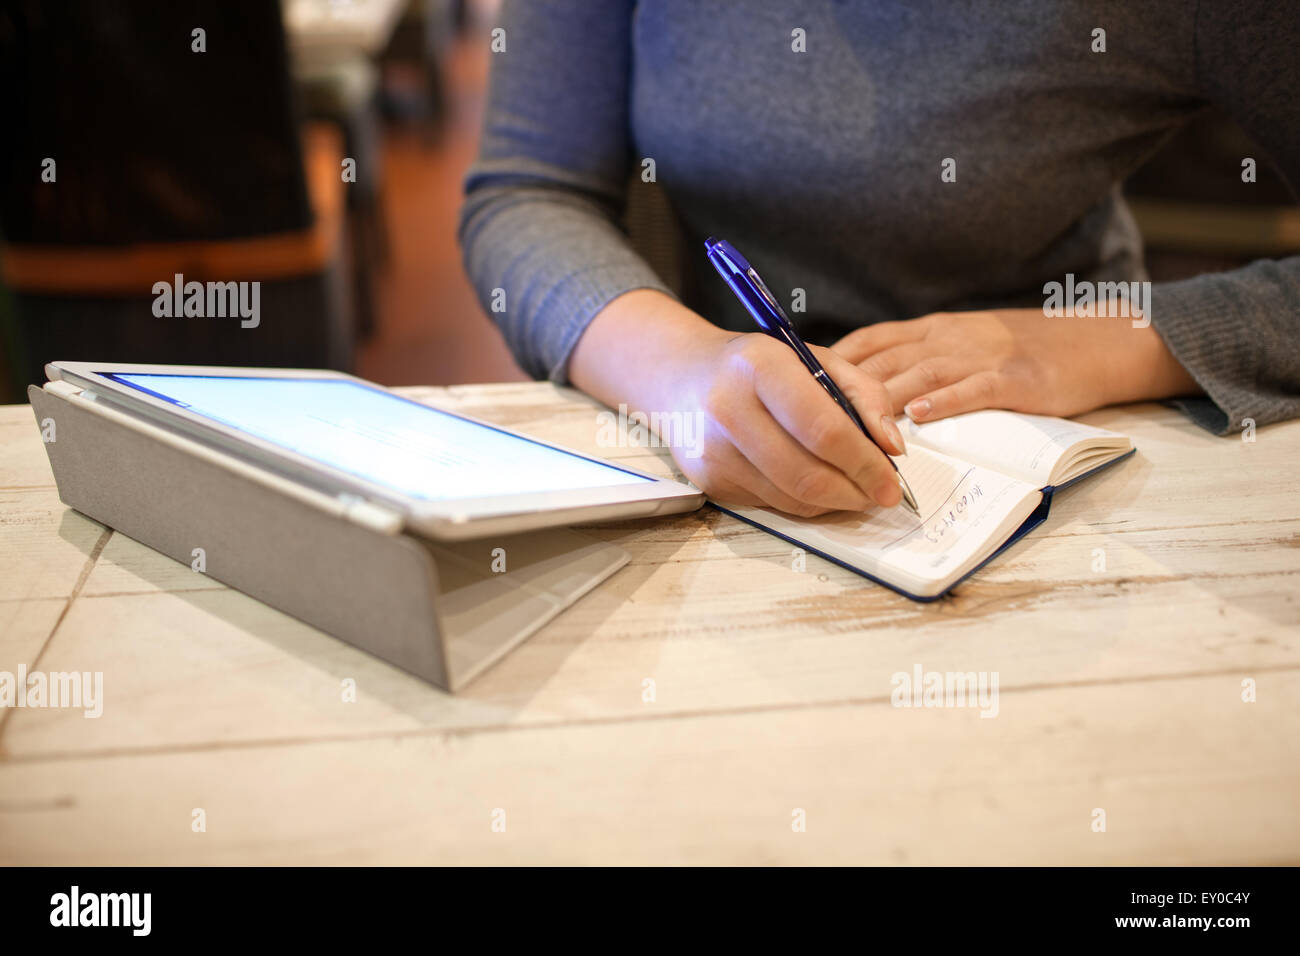 Woman taking down information in notebook - Stock Image